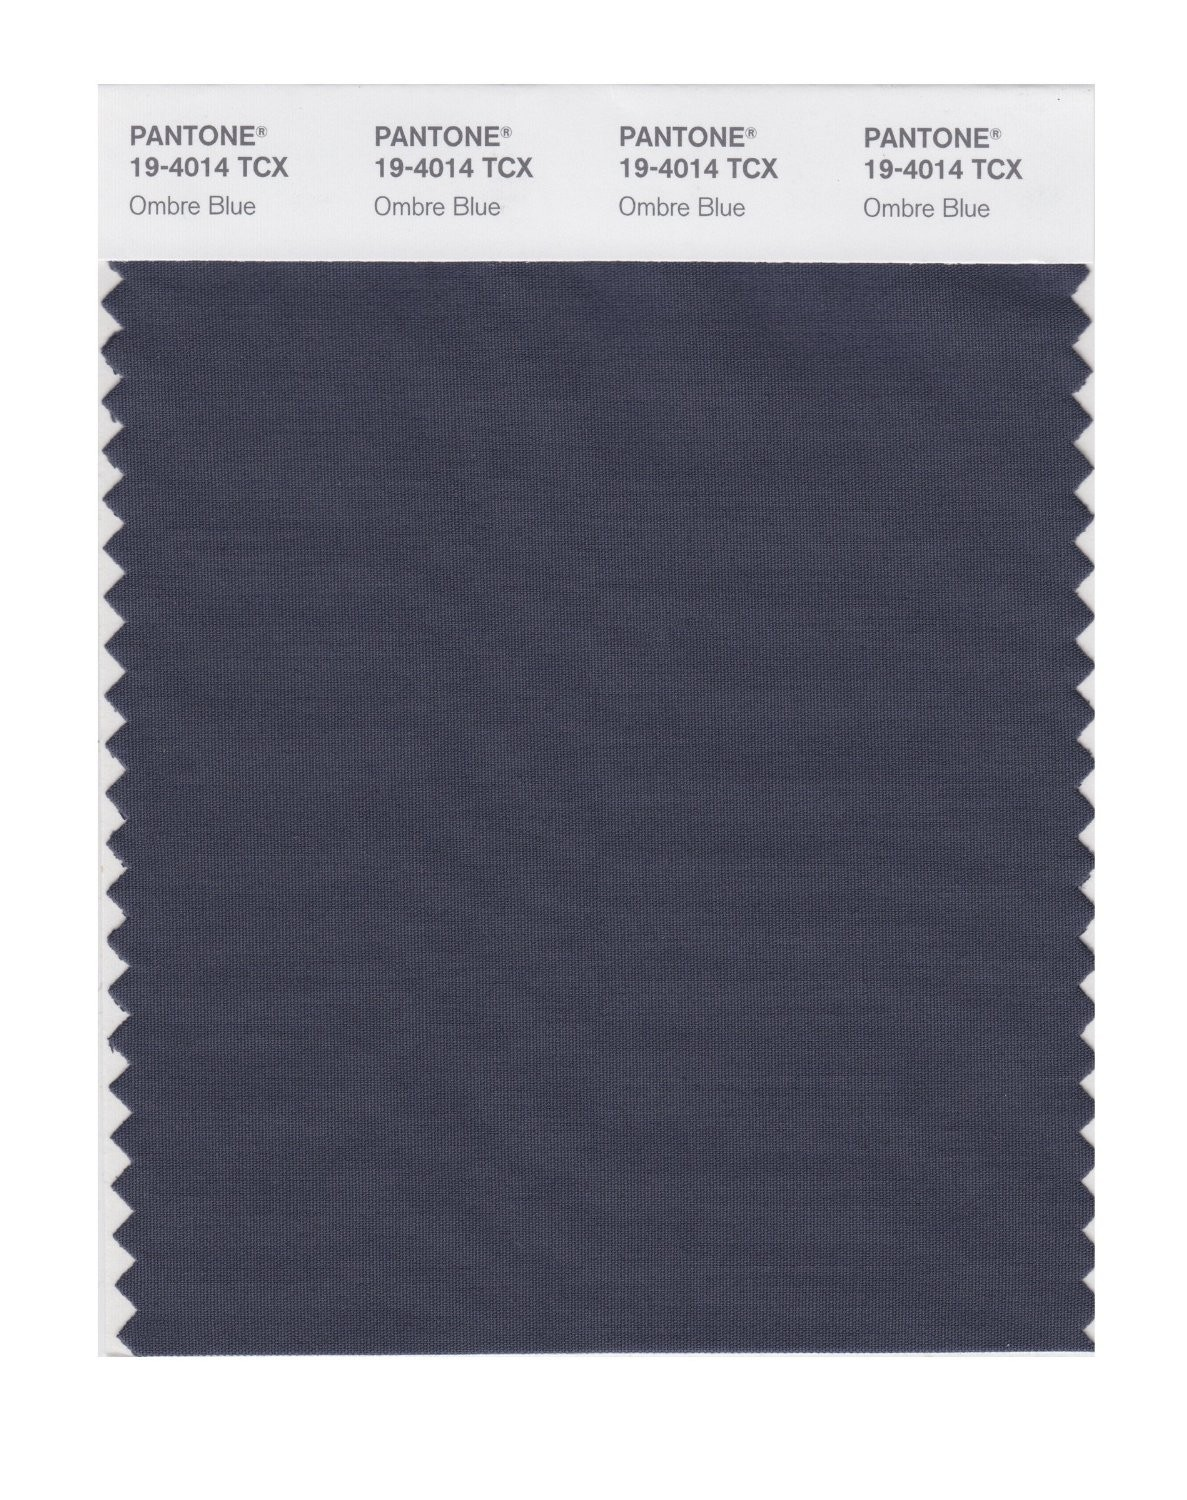 Pantone 19-4014 TCX Swatch Card Ombre Blue